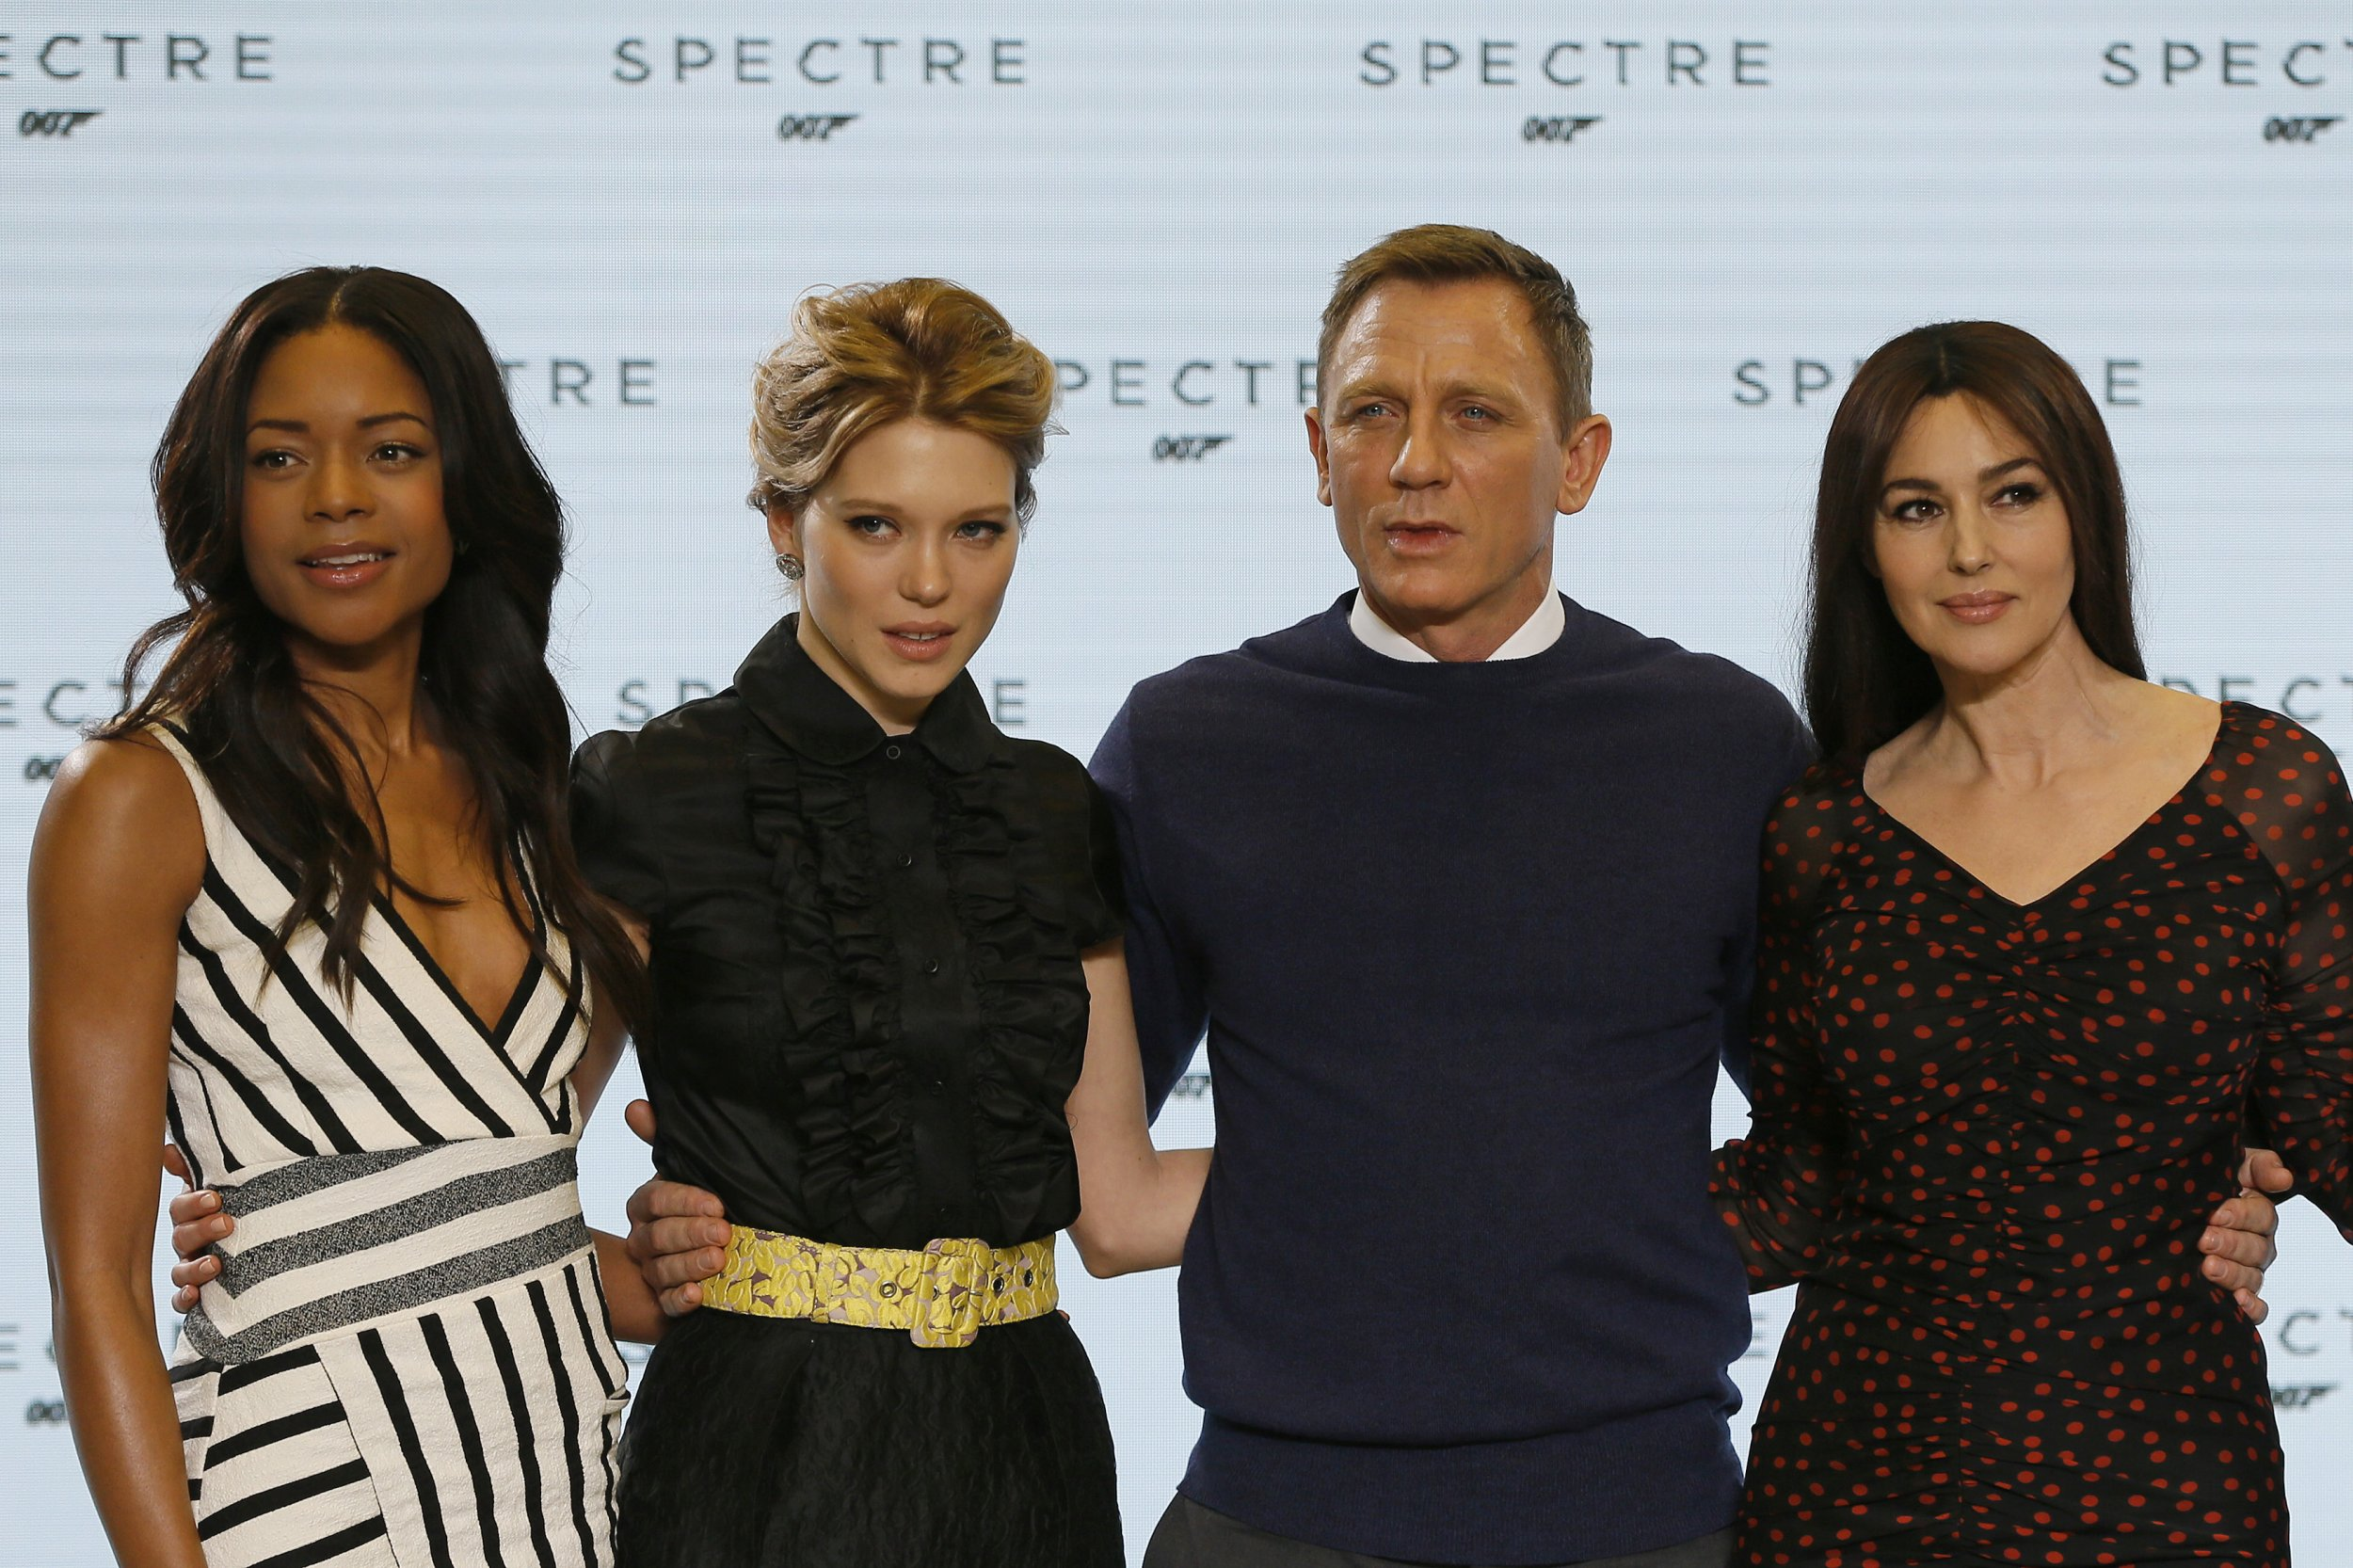 24th Bond Film To Be Called Spectre Hinting At Return Of